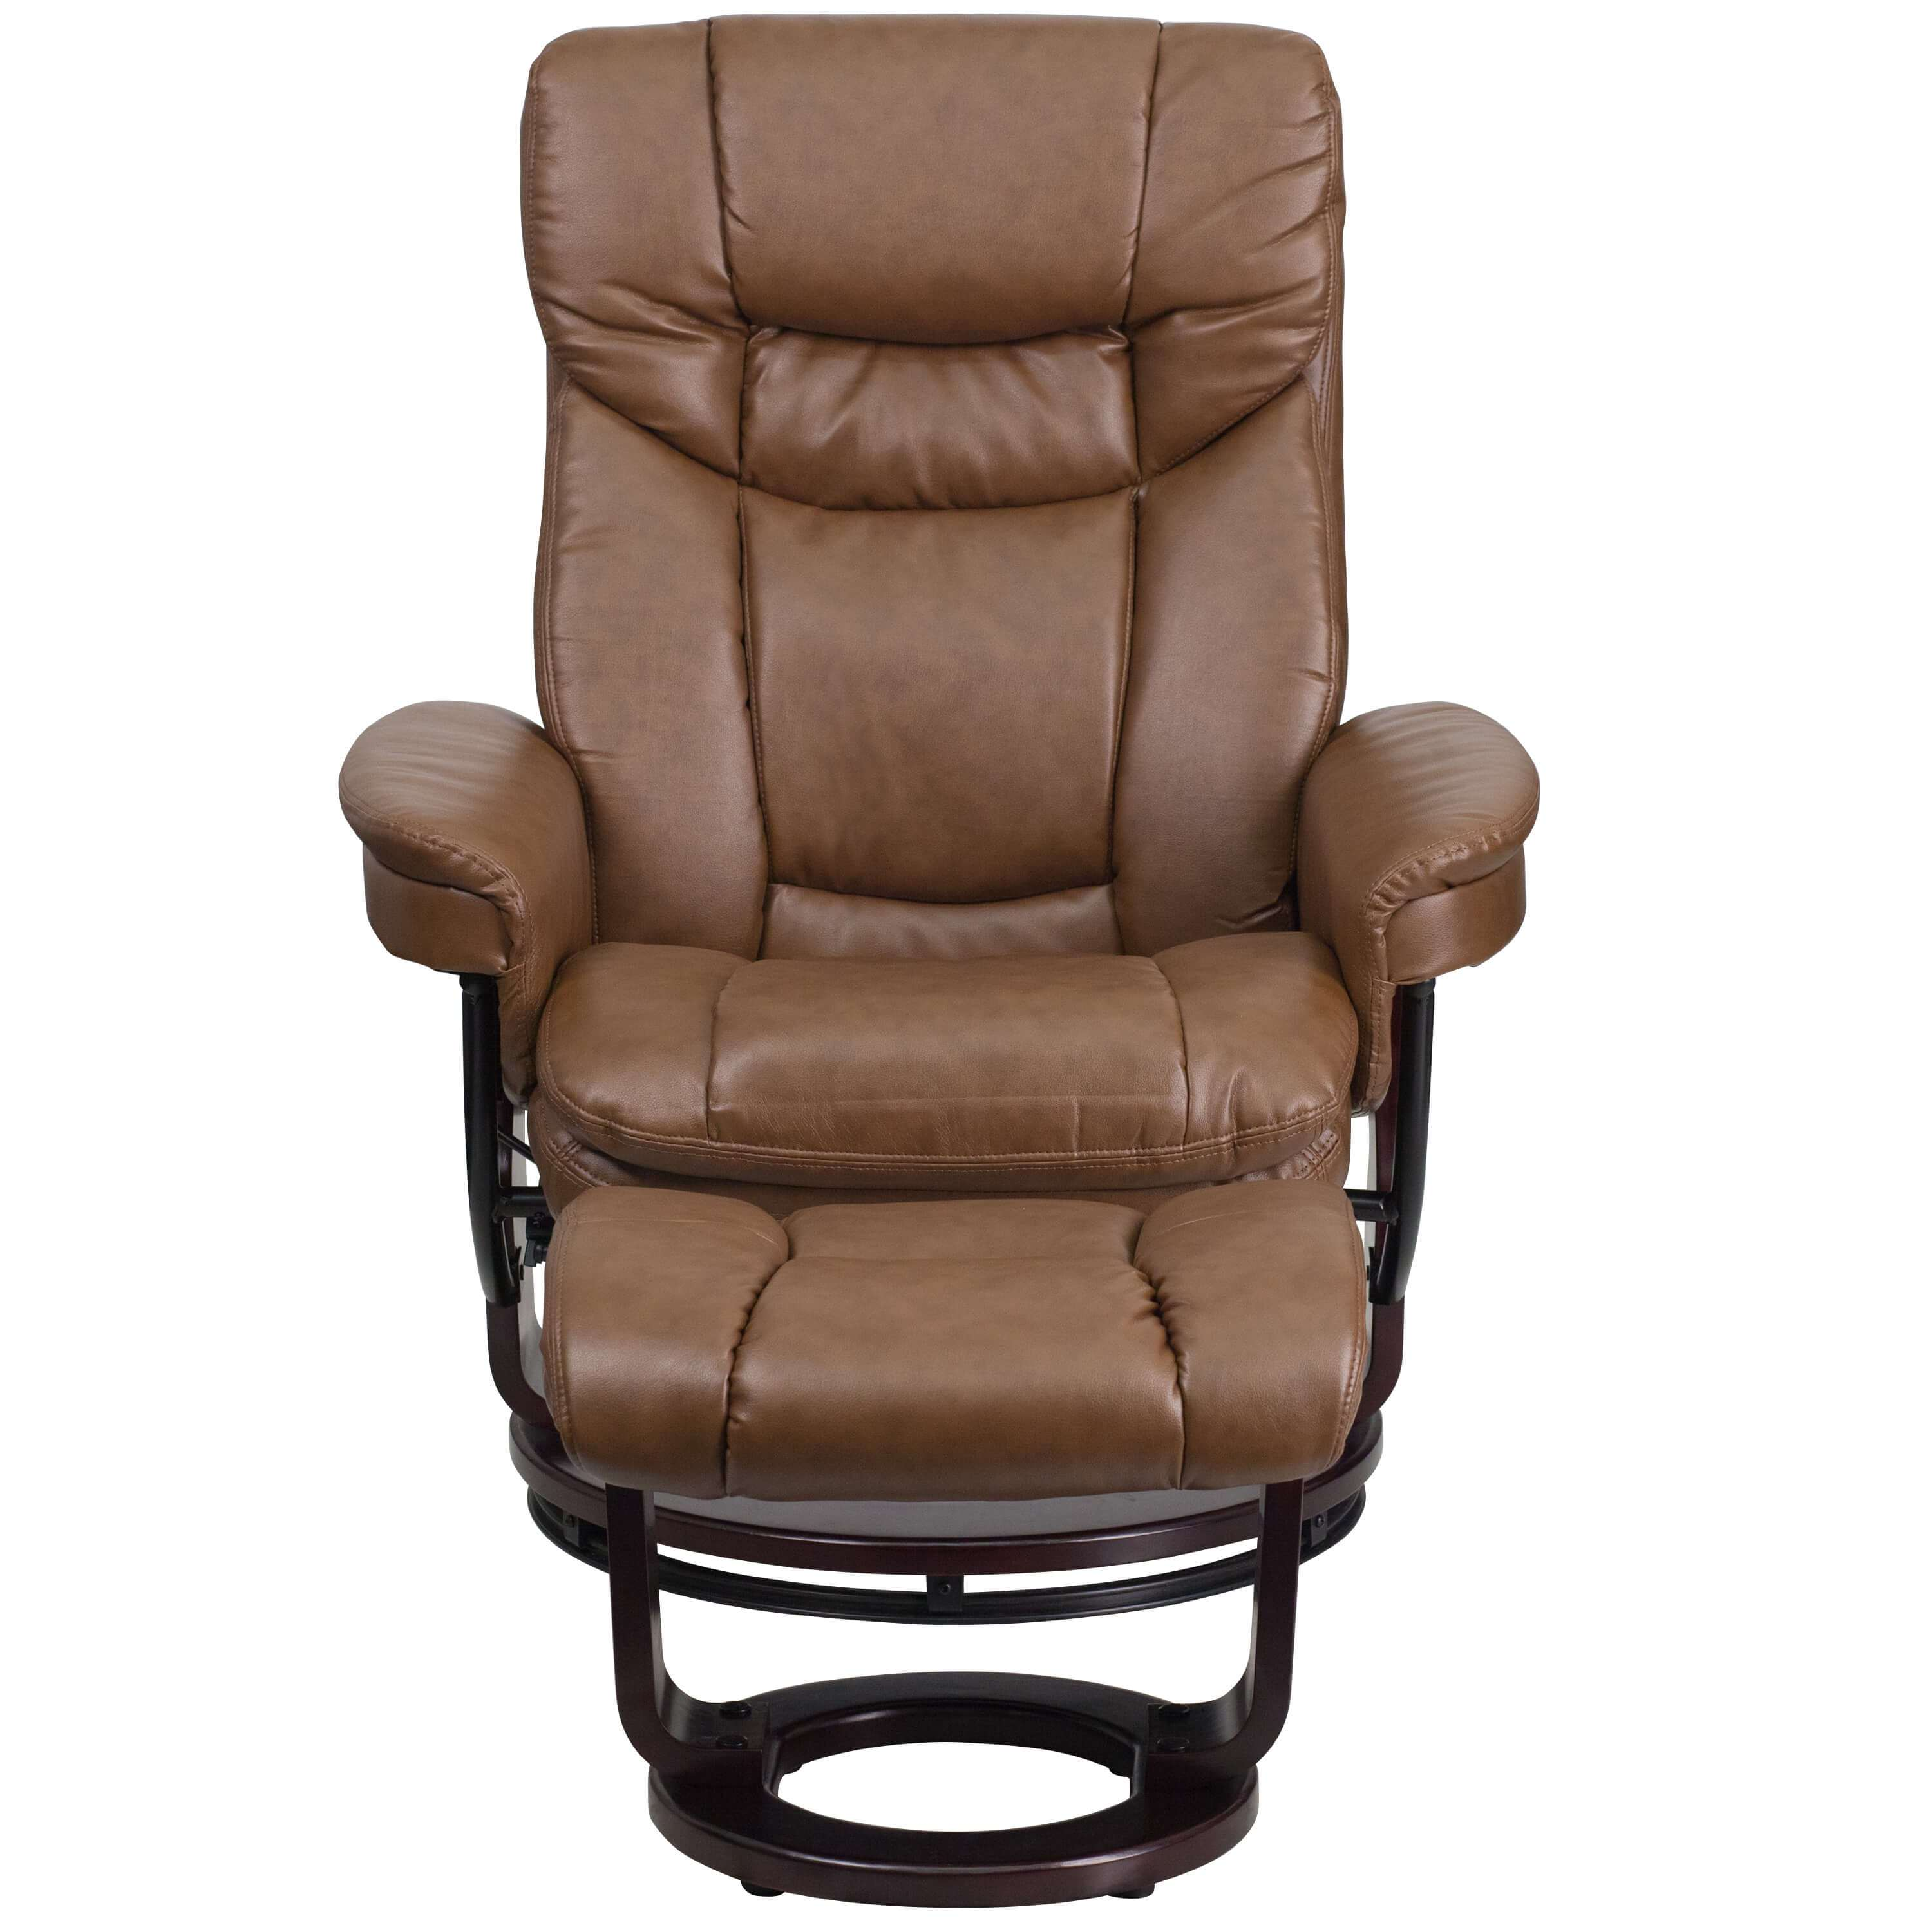 Reclining armchair front view